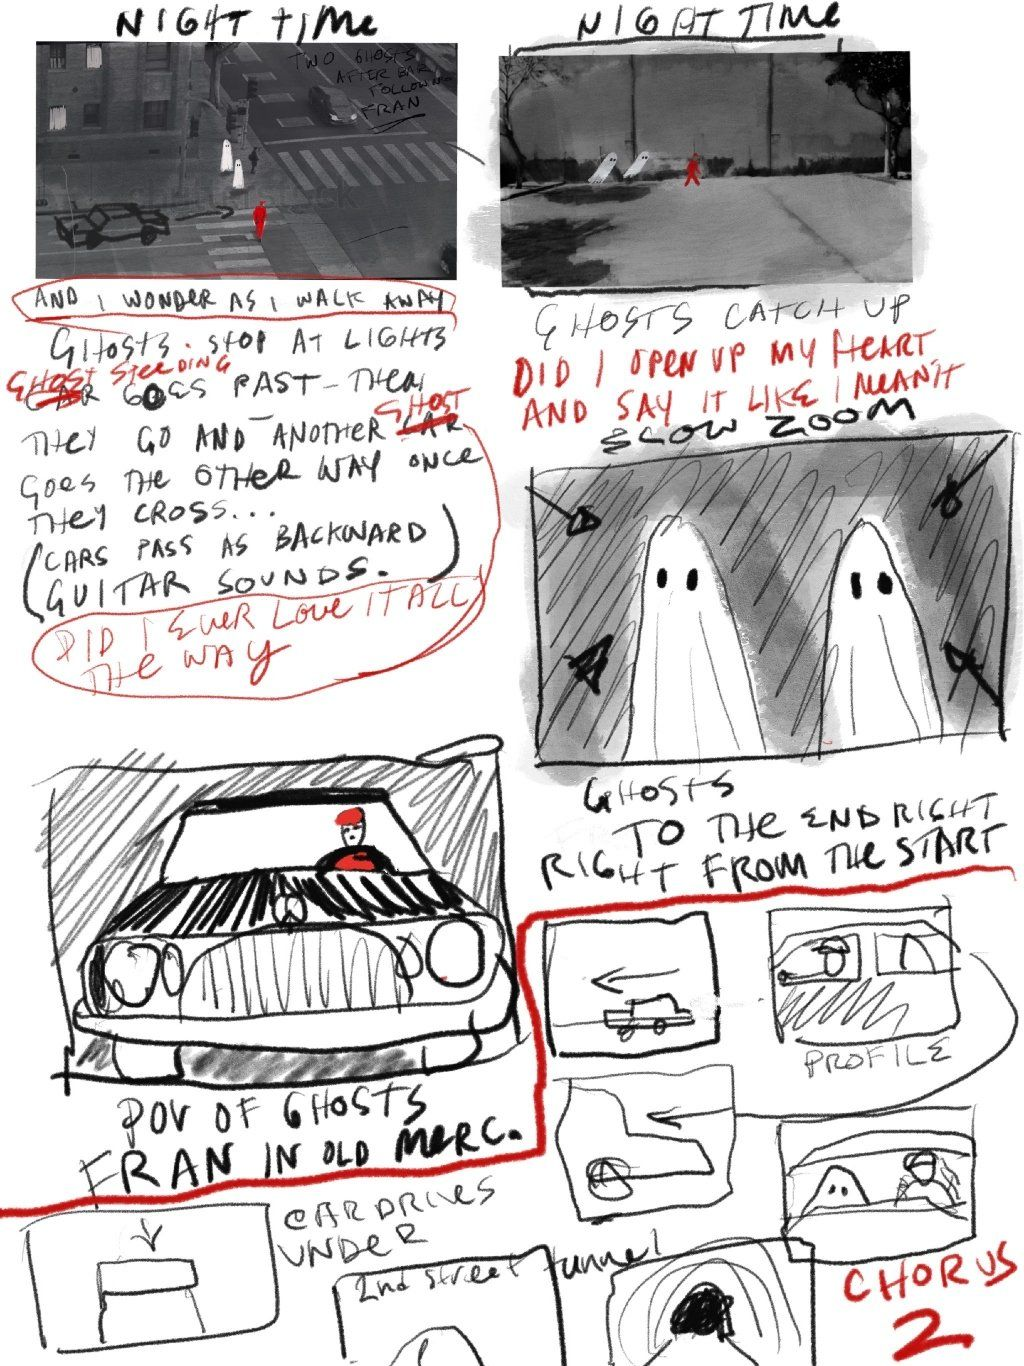 A storyboard for A Ghost